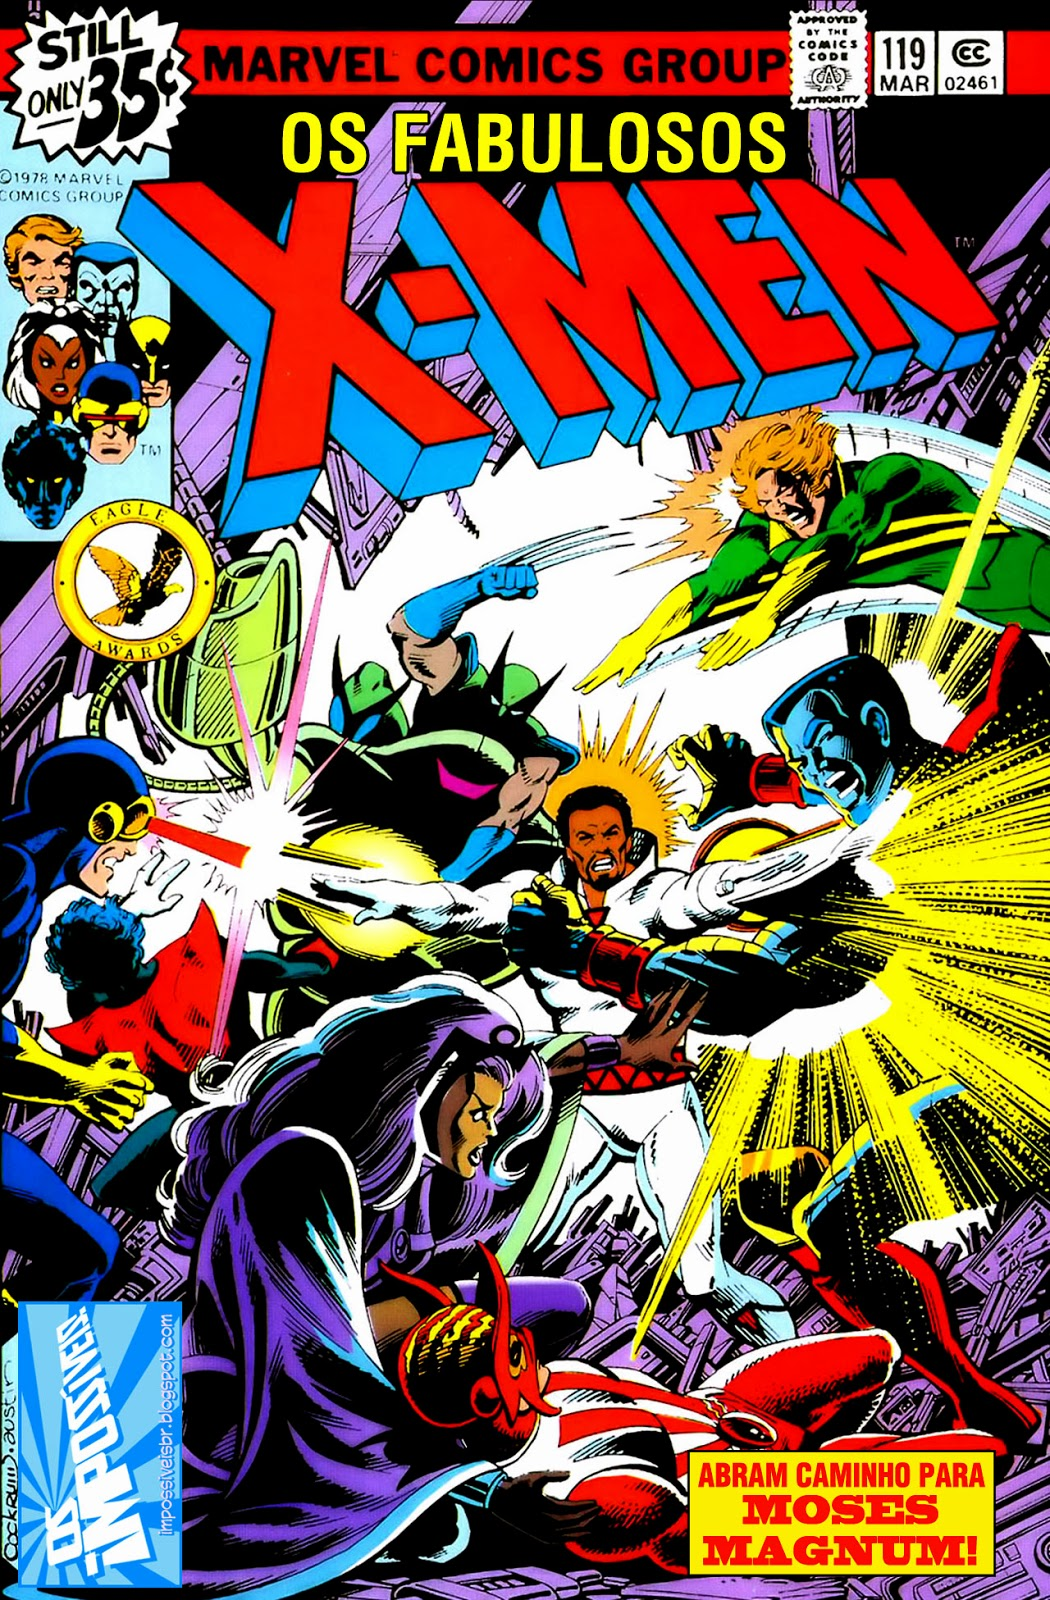 http://www.mediafire.com/download/az53t5370q7sdeb/Os.Fabulosos.X-Men.(X-Men.V1).119.HQBR.28OUT13.Os.Impossiveis.cbr